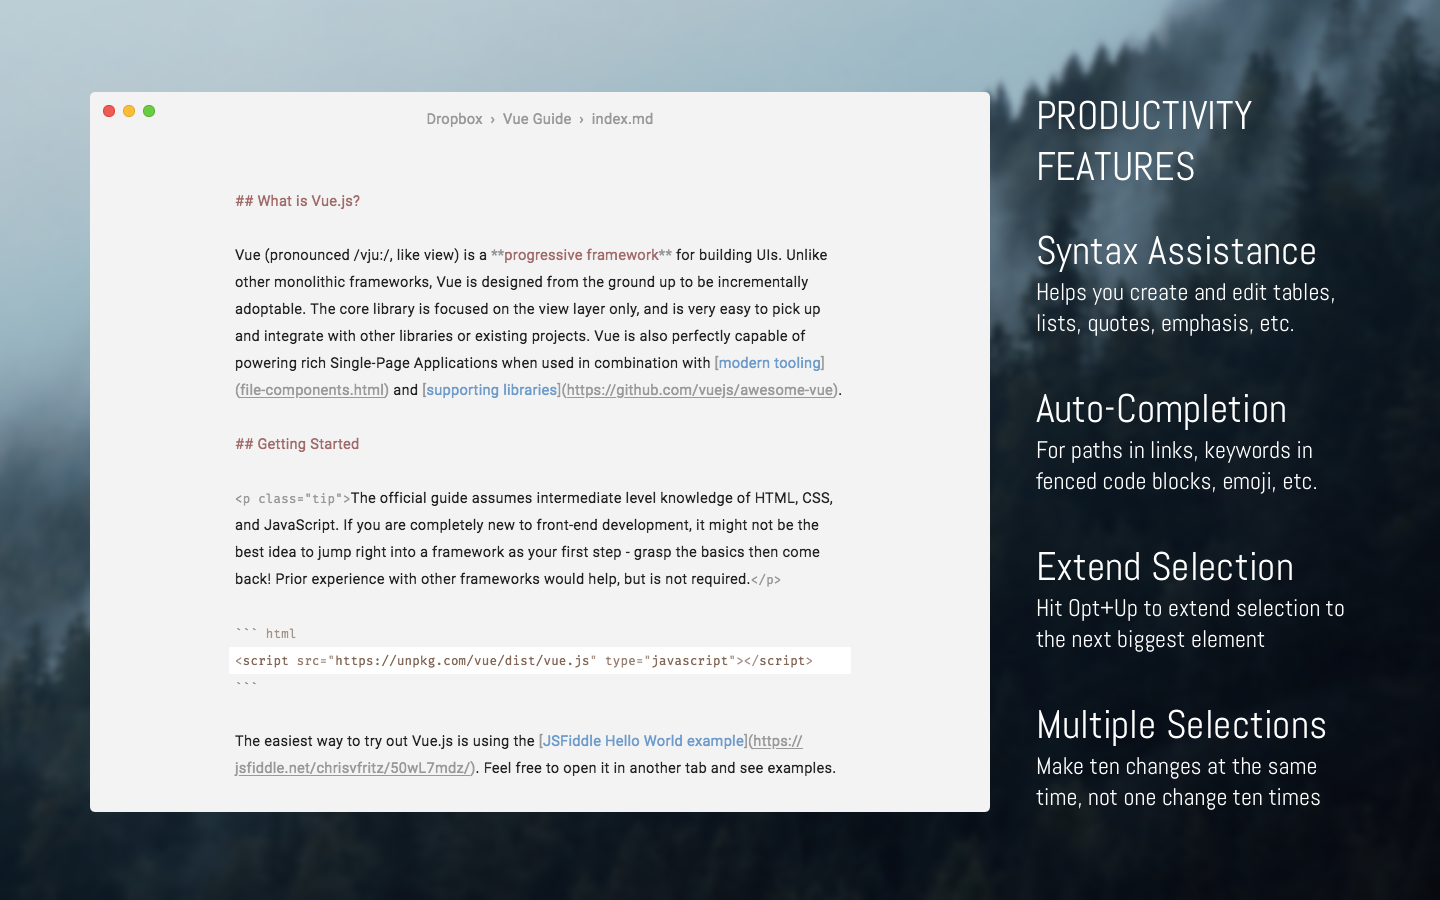 26 Best Markdown editors for Windows as of 2019 - Slant